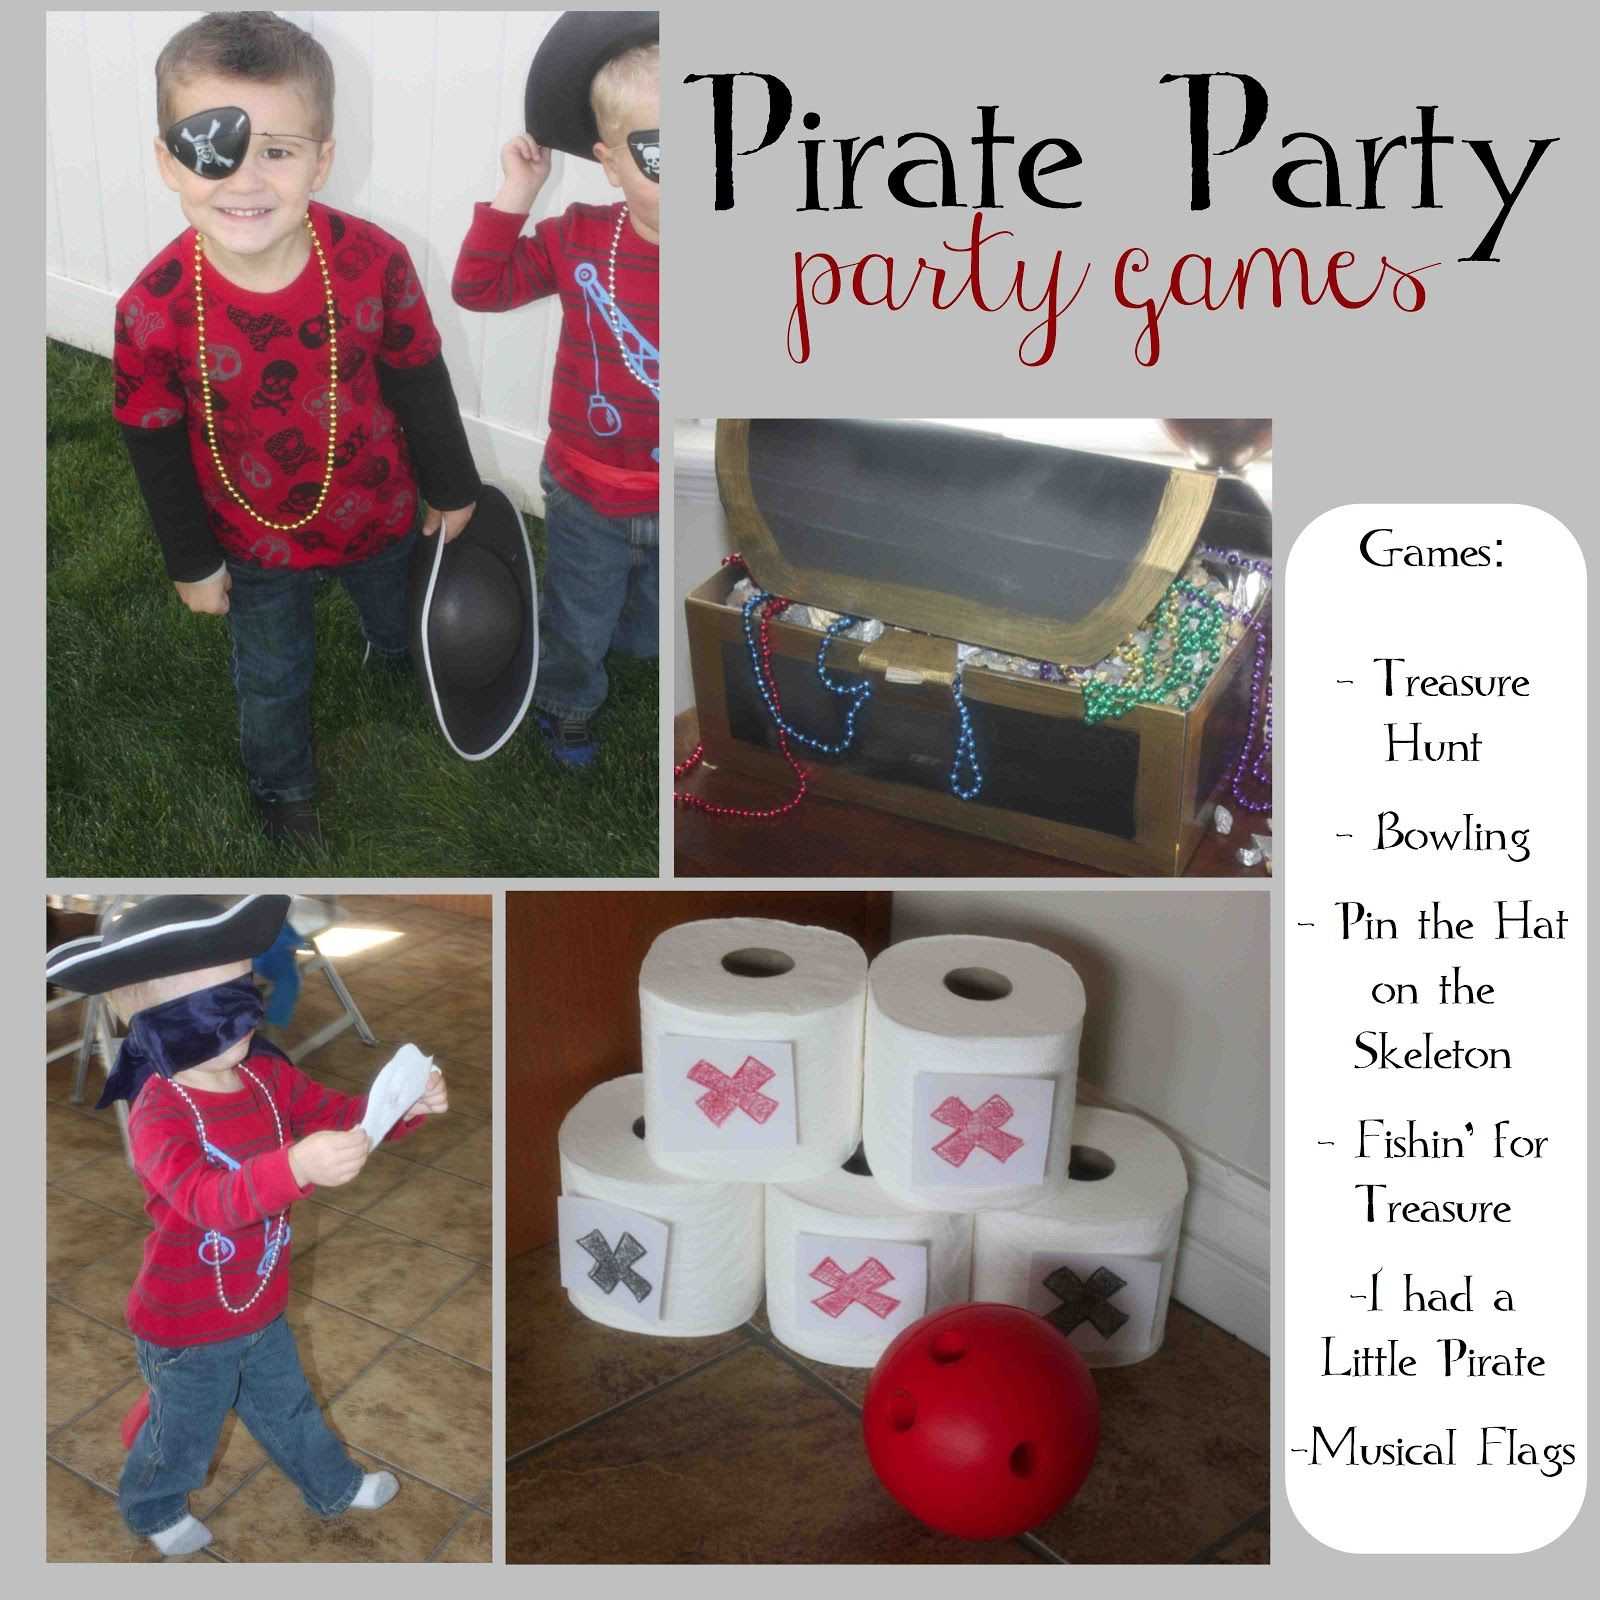 Just Sweet And Simple: Kids Pirate Party Games I Have A